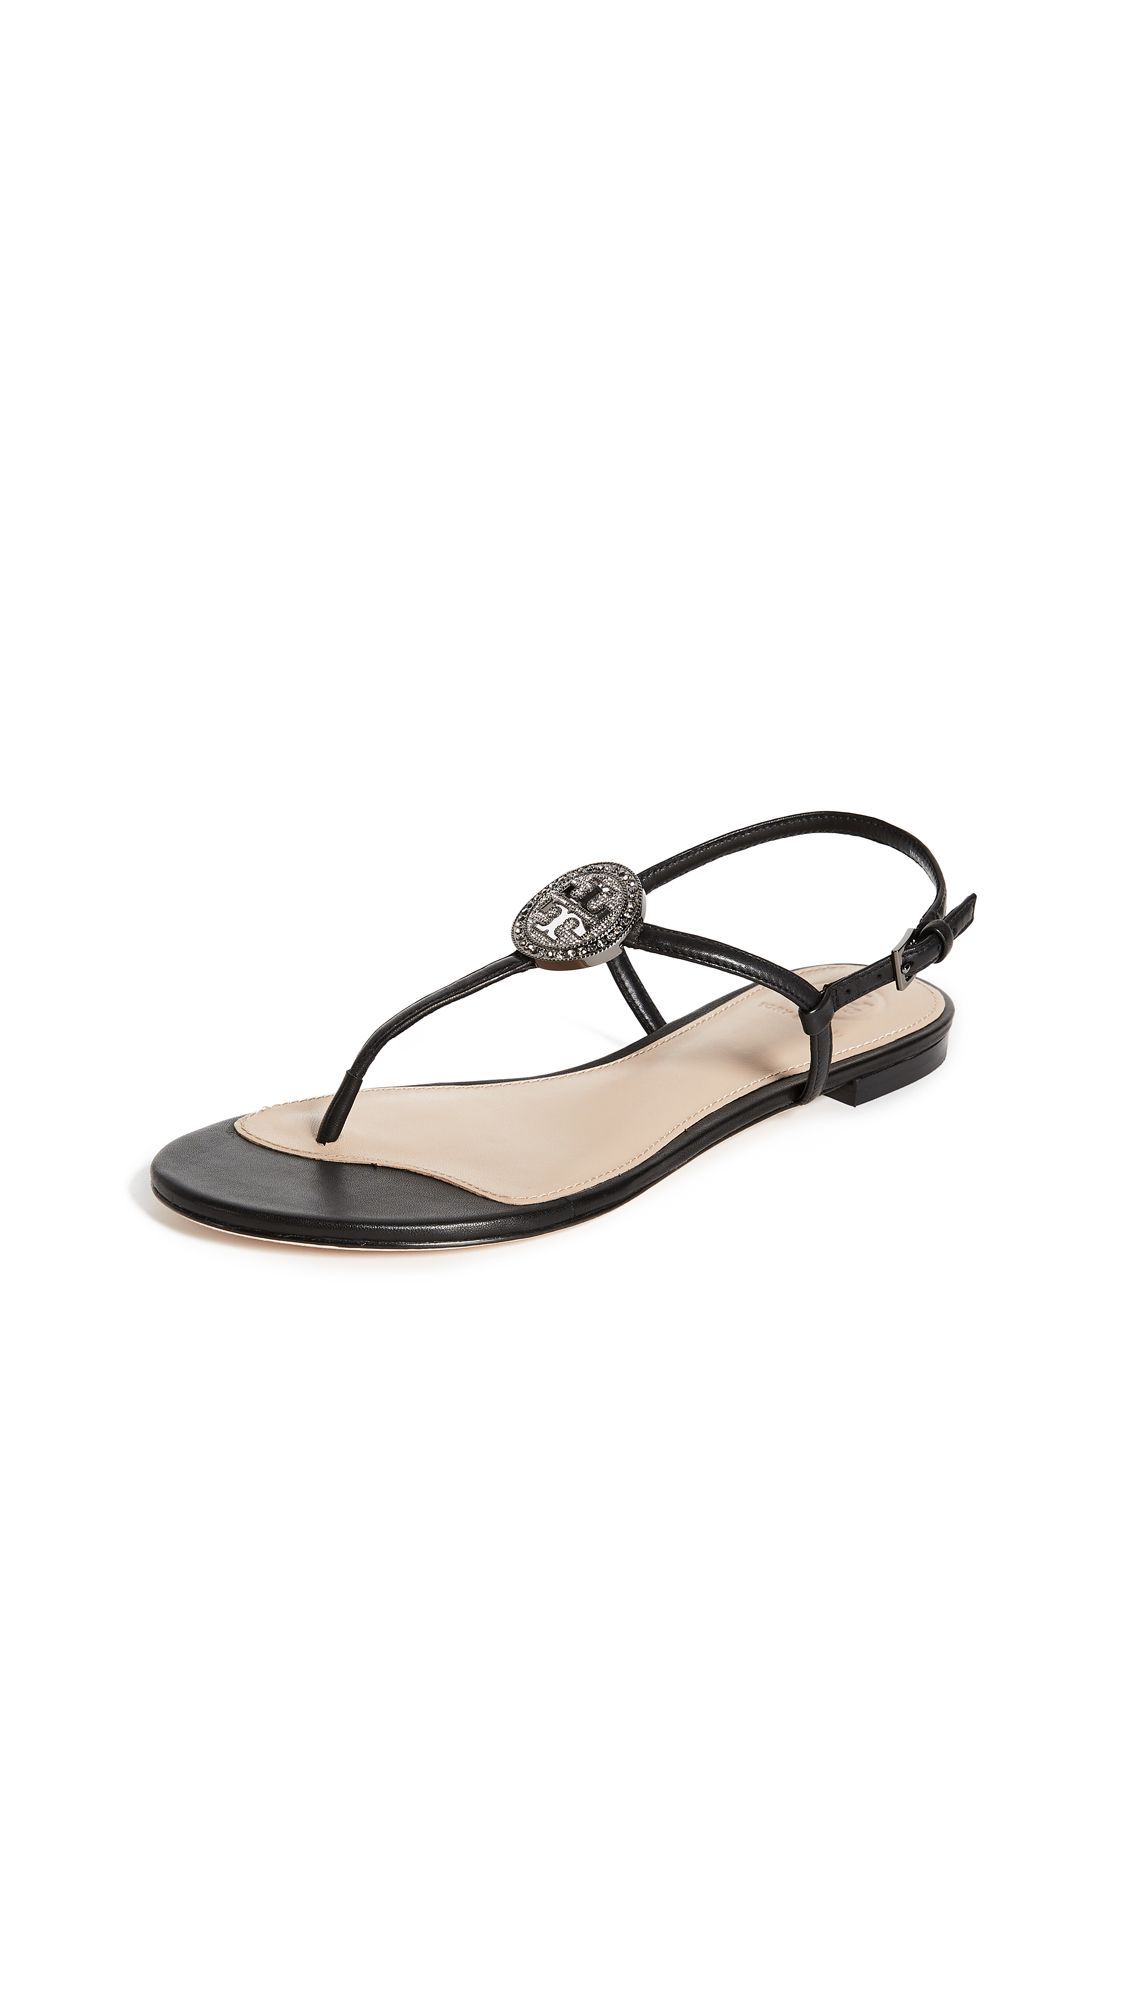 Tory Burch Liana Flat Sandals - Black